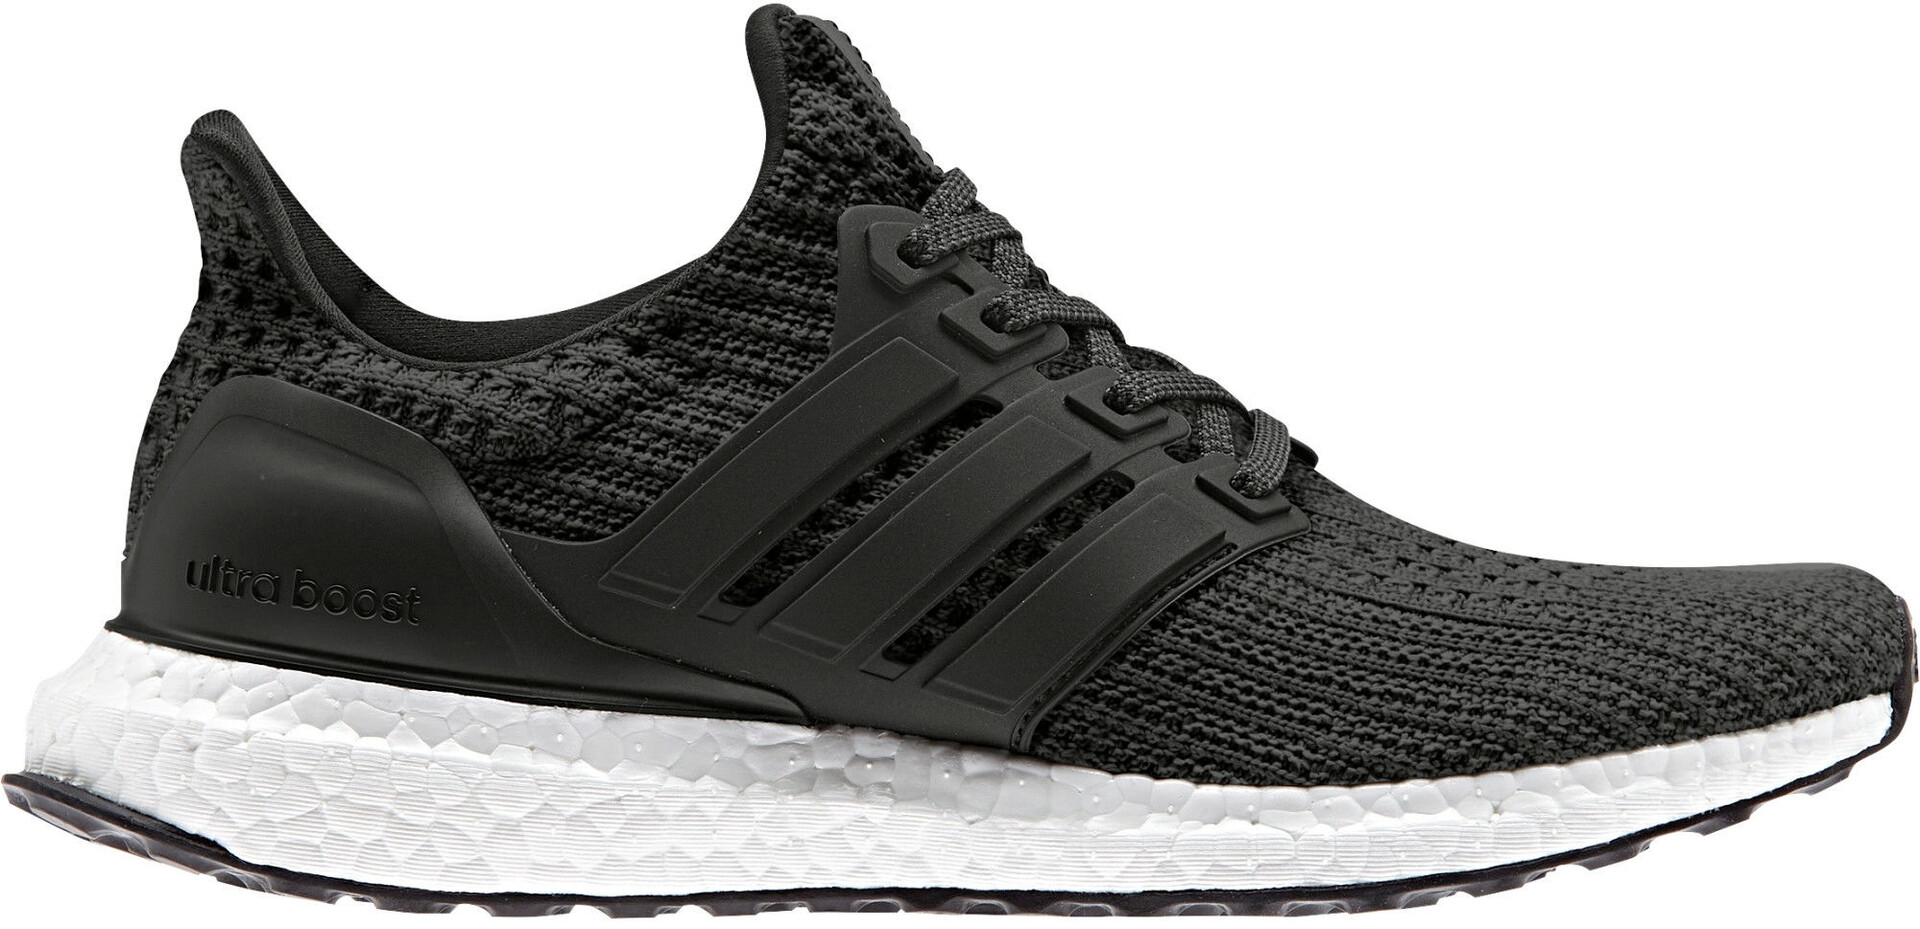 adidas Ultraboost Ultra Boost Trainers Black White Shoes